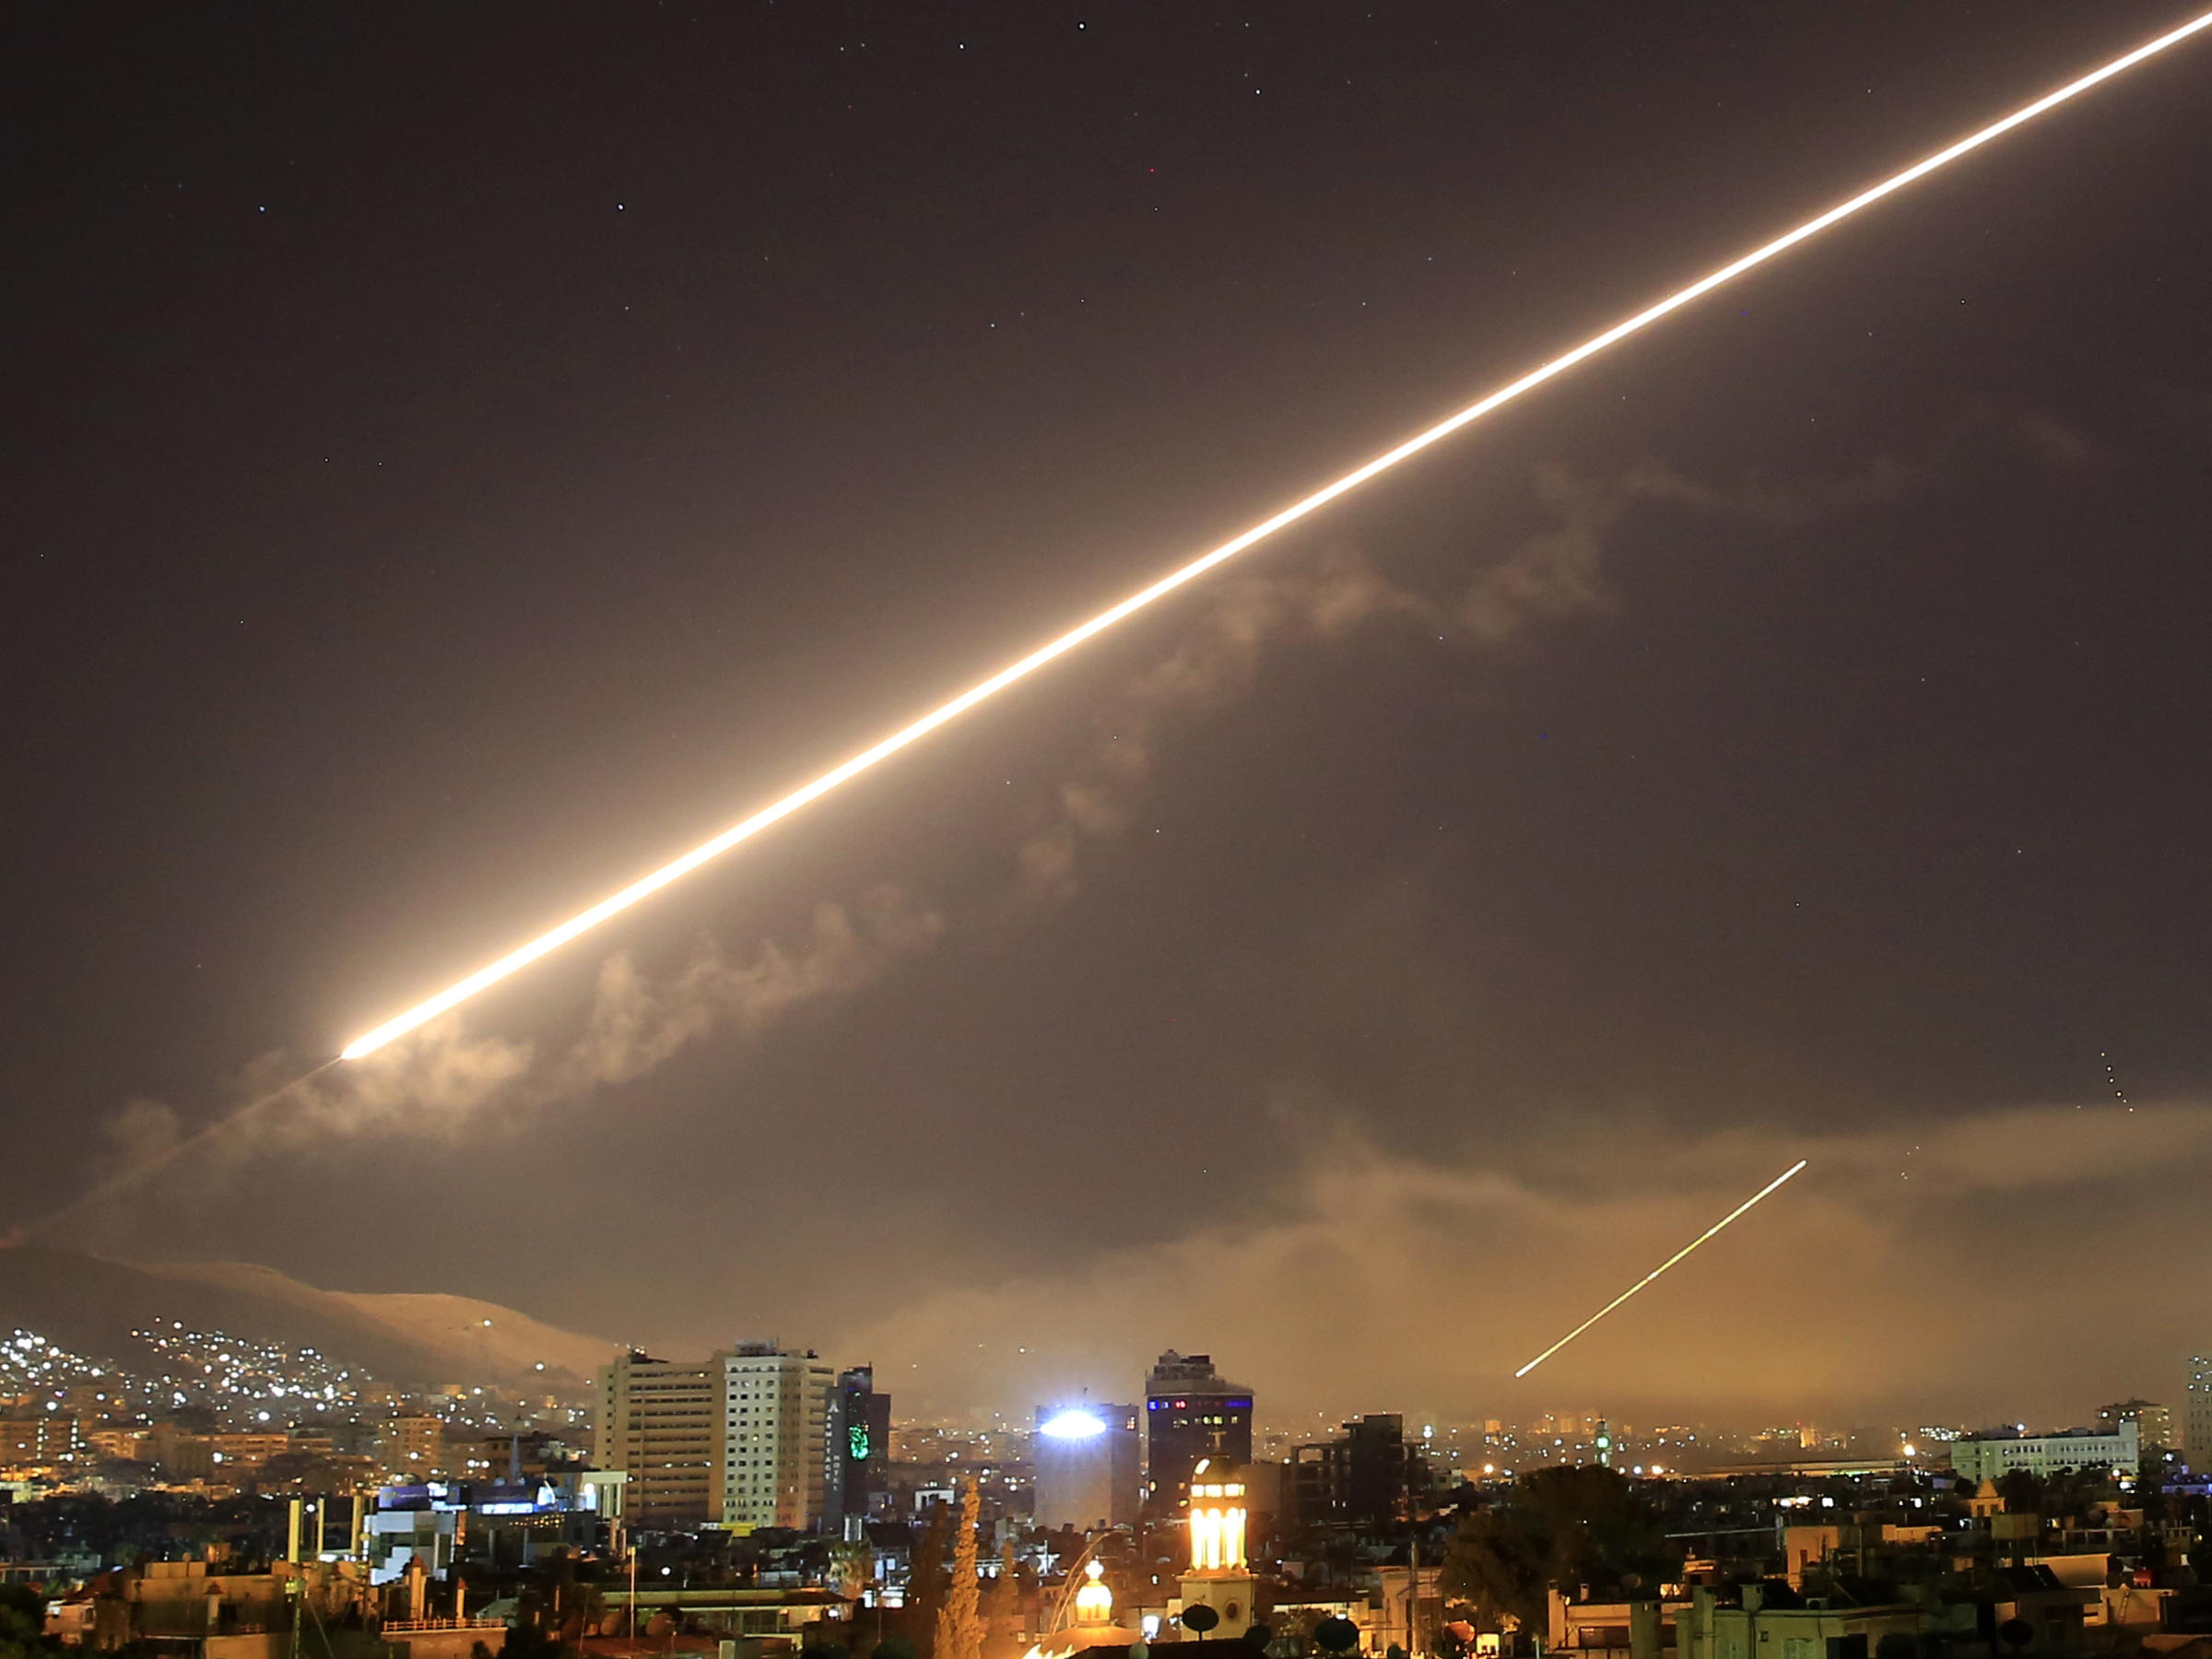 A surface-to-air missile lit up the sky in Damascus early Saturday morning after President Trump announced airstrikes would be launched to deter the Syrian government for allegedly using chemical weapons